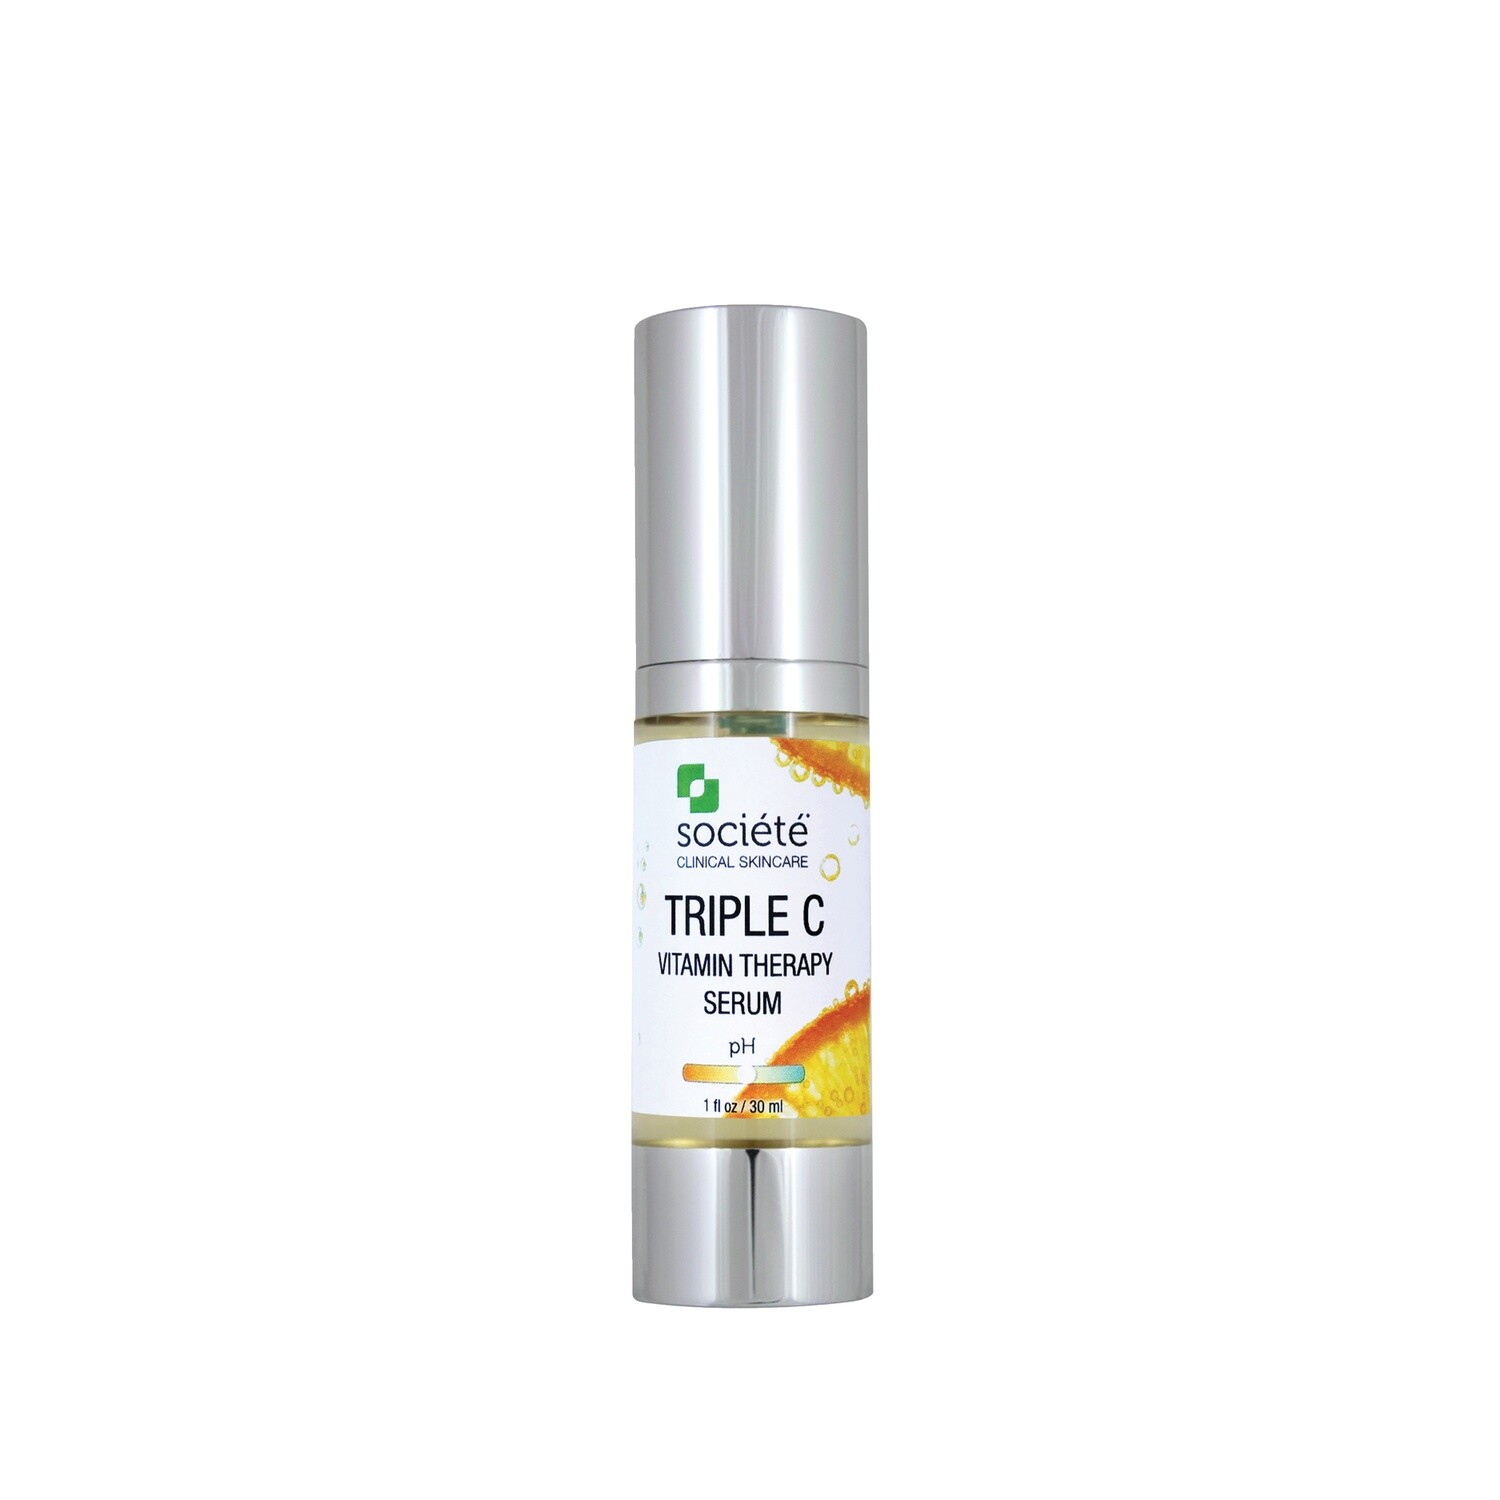 SOCIETE Triple C Serum 30gm